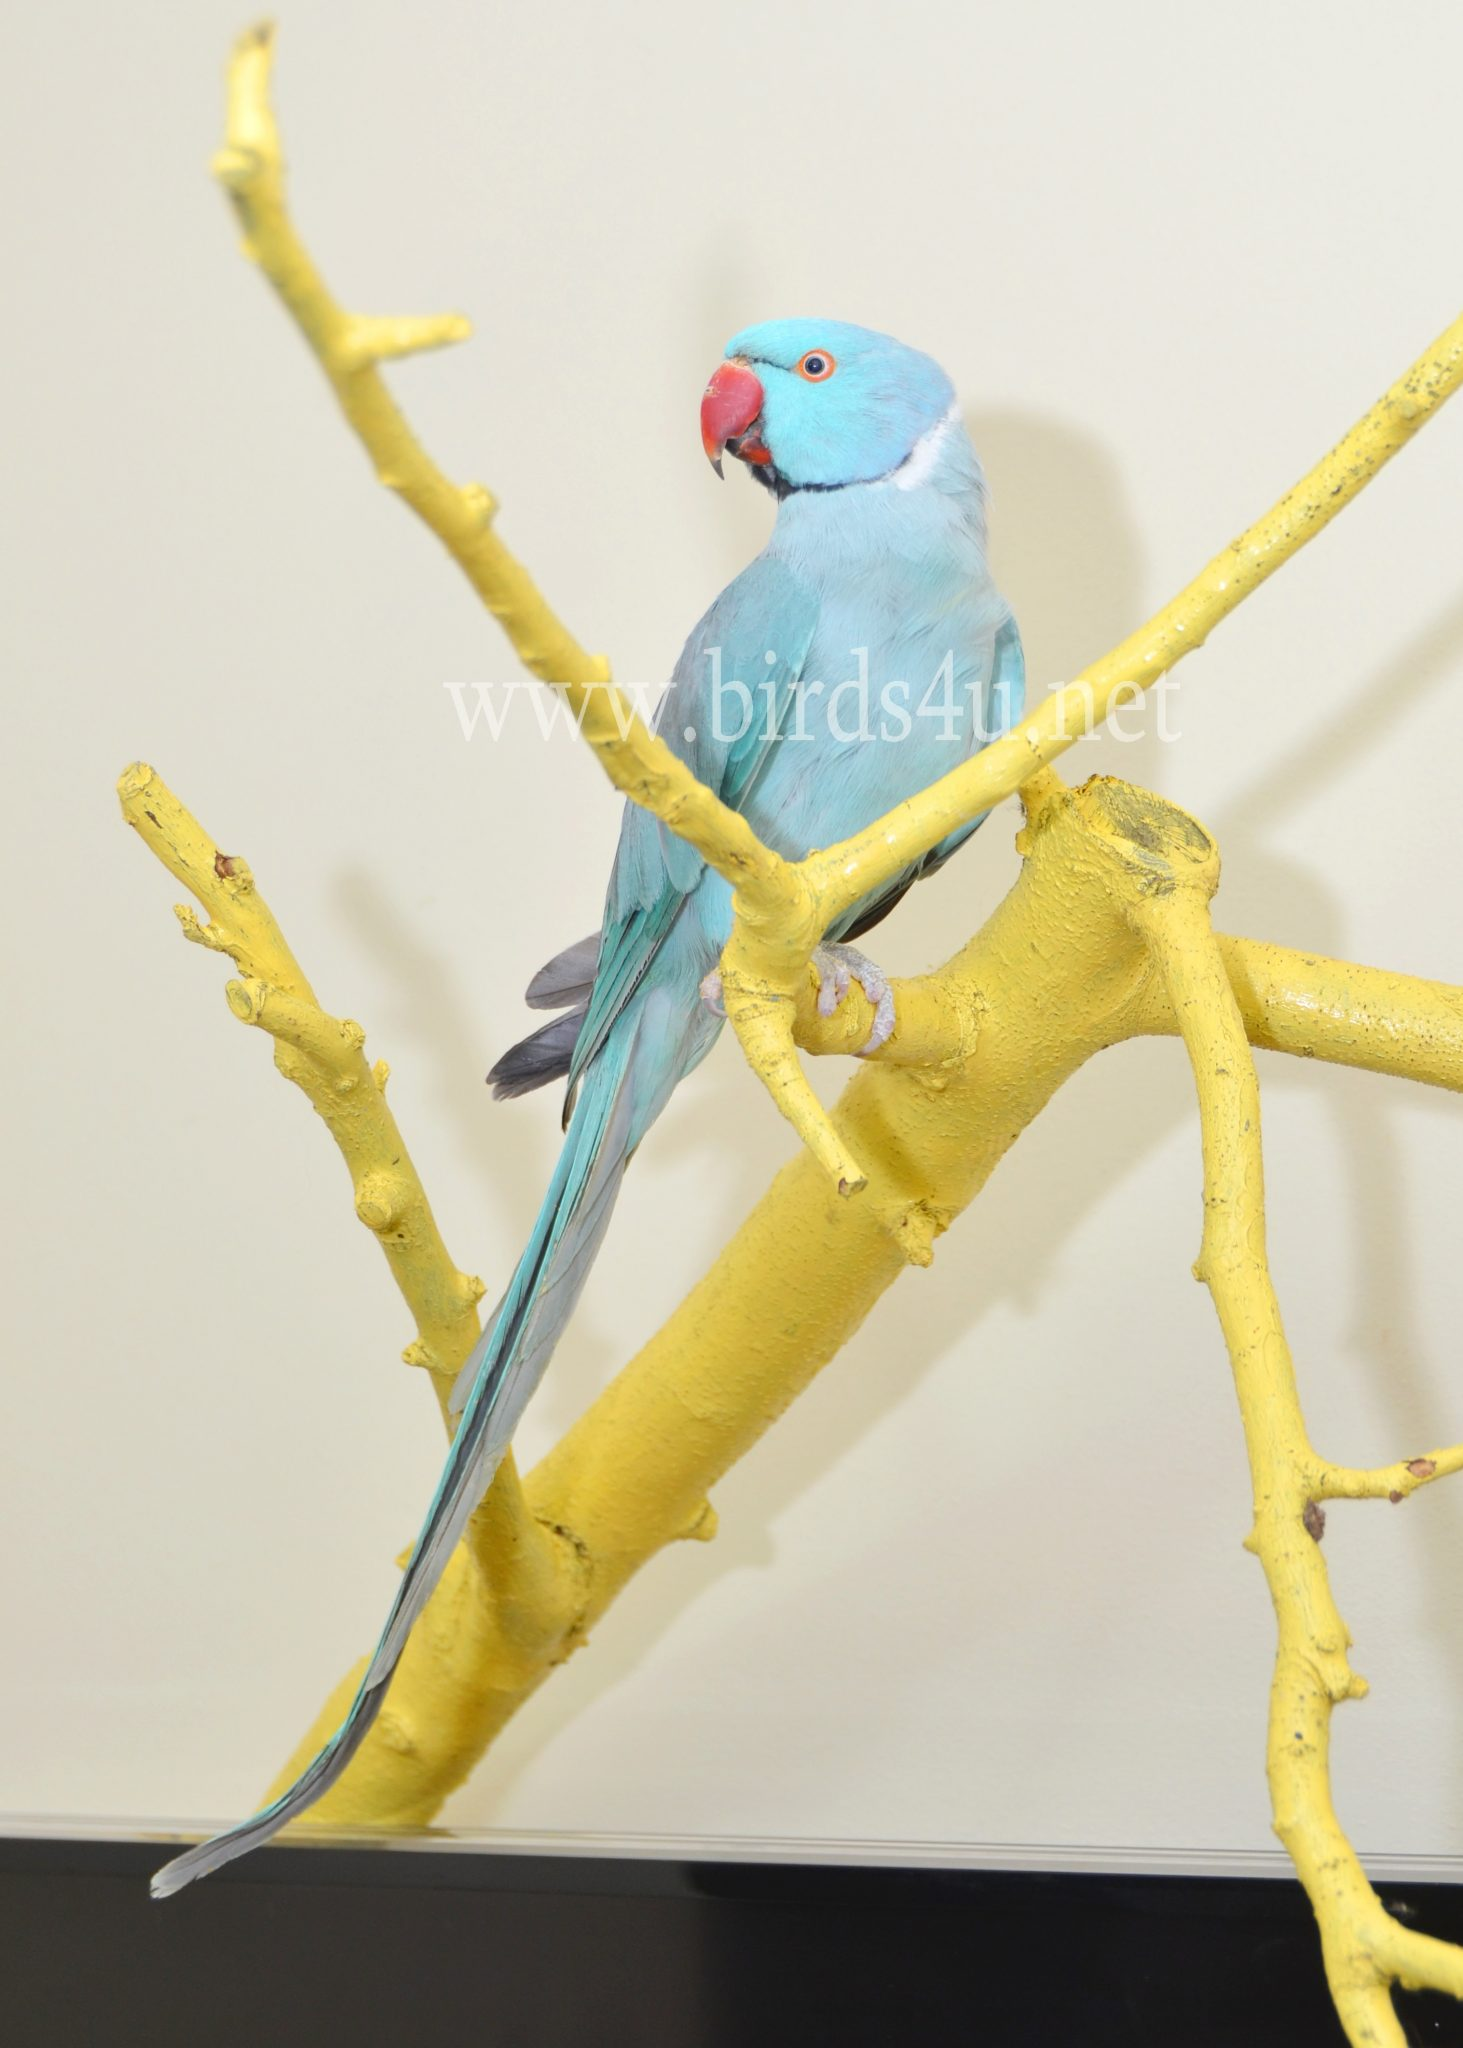 Small blue parrot